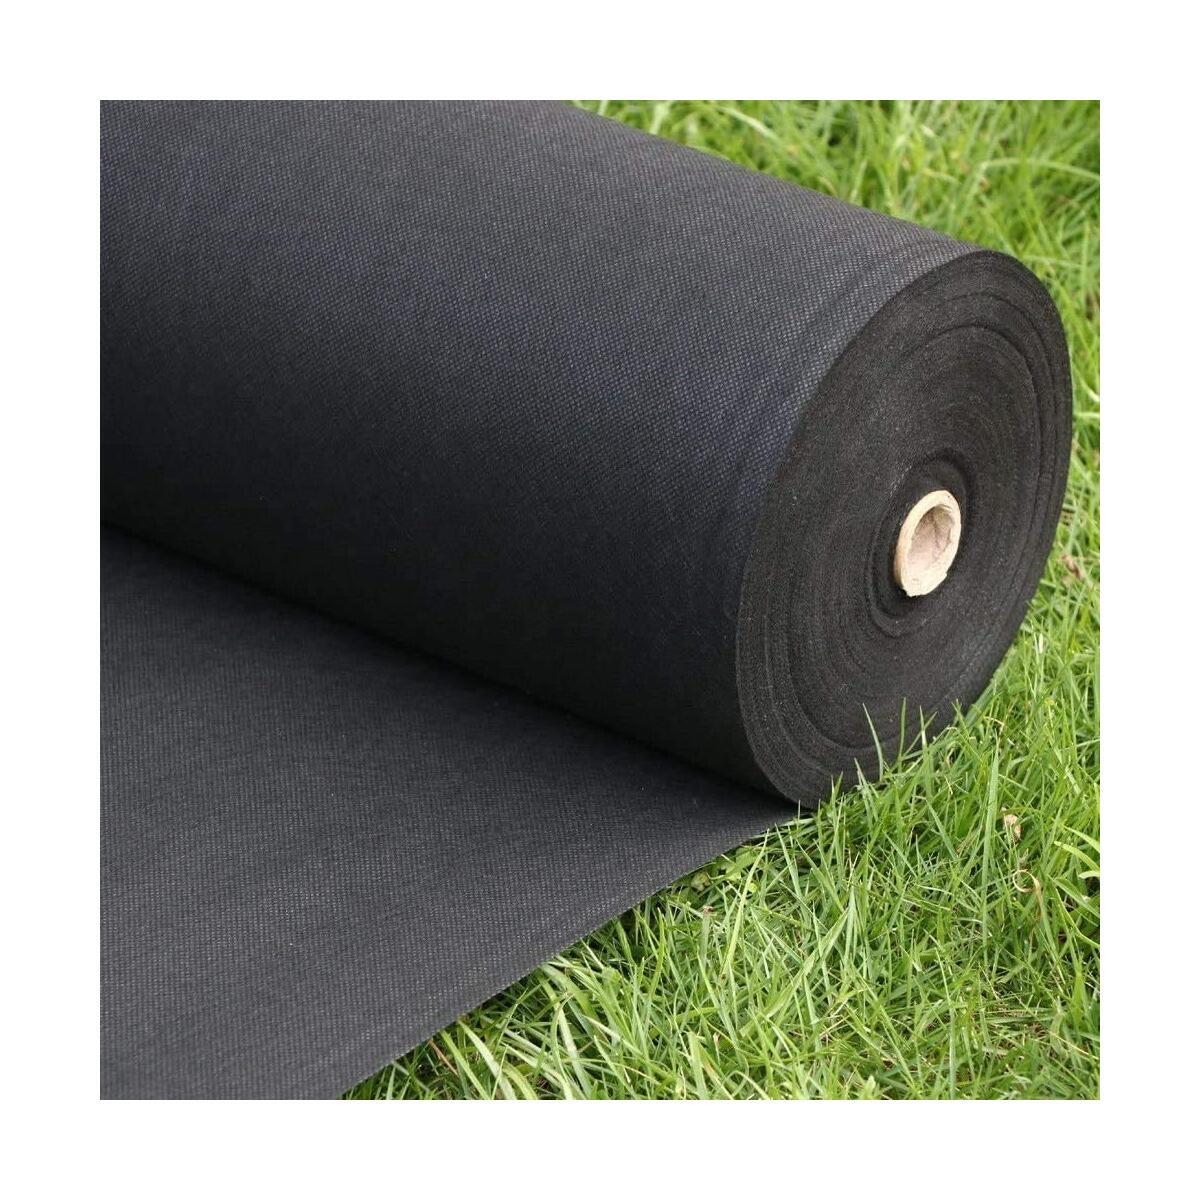 FLARMOR Pro Garden Landscape Fabric Heavy Duty - French Cloth Ground Cover One Roll 4x300 ft 1.8 oz